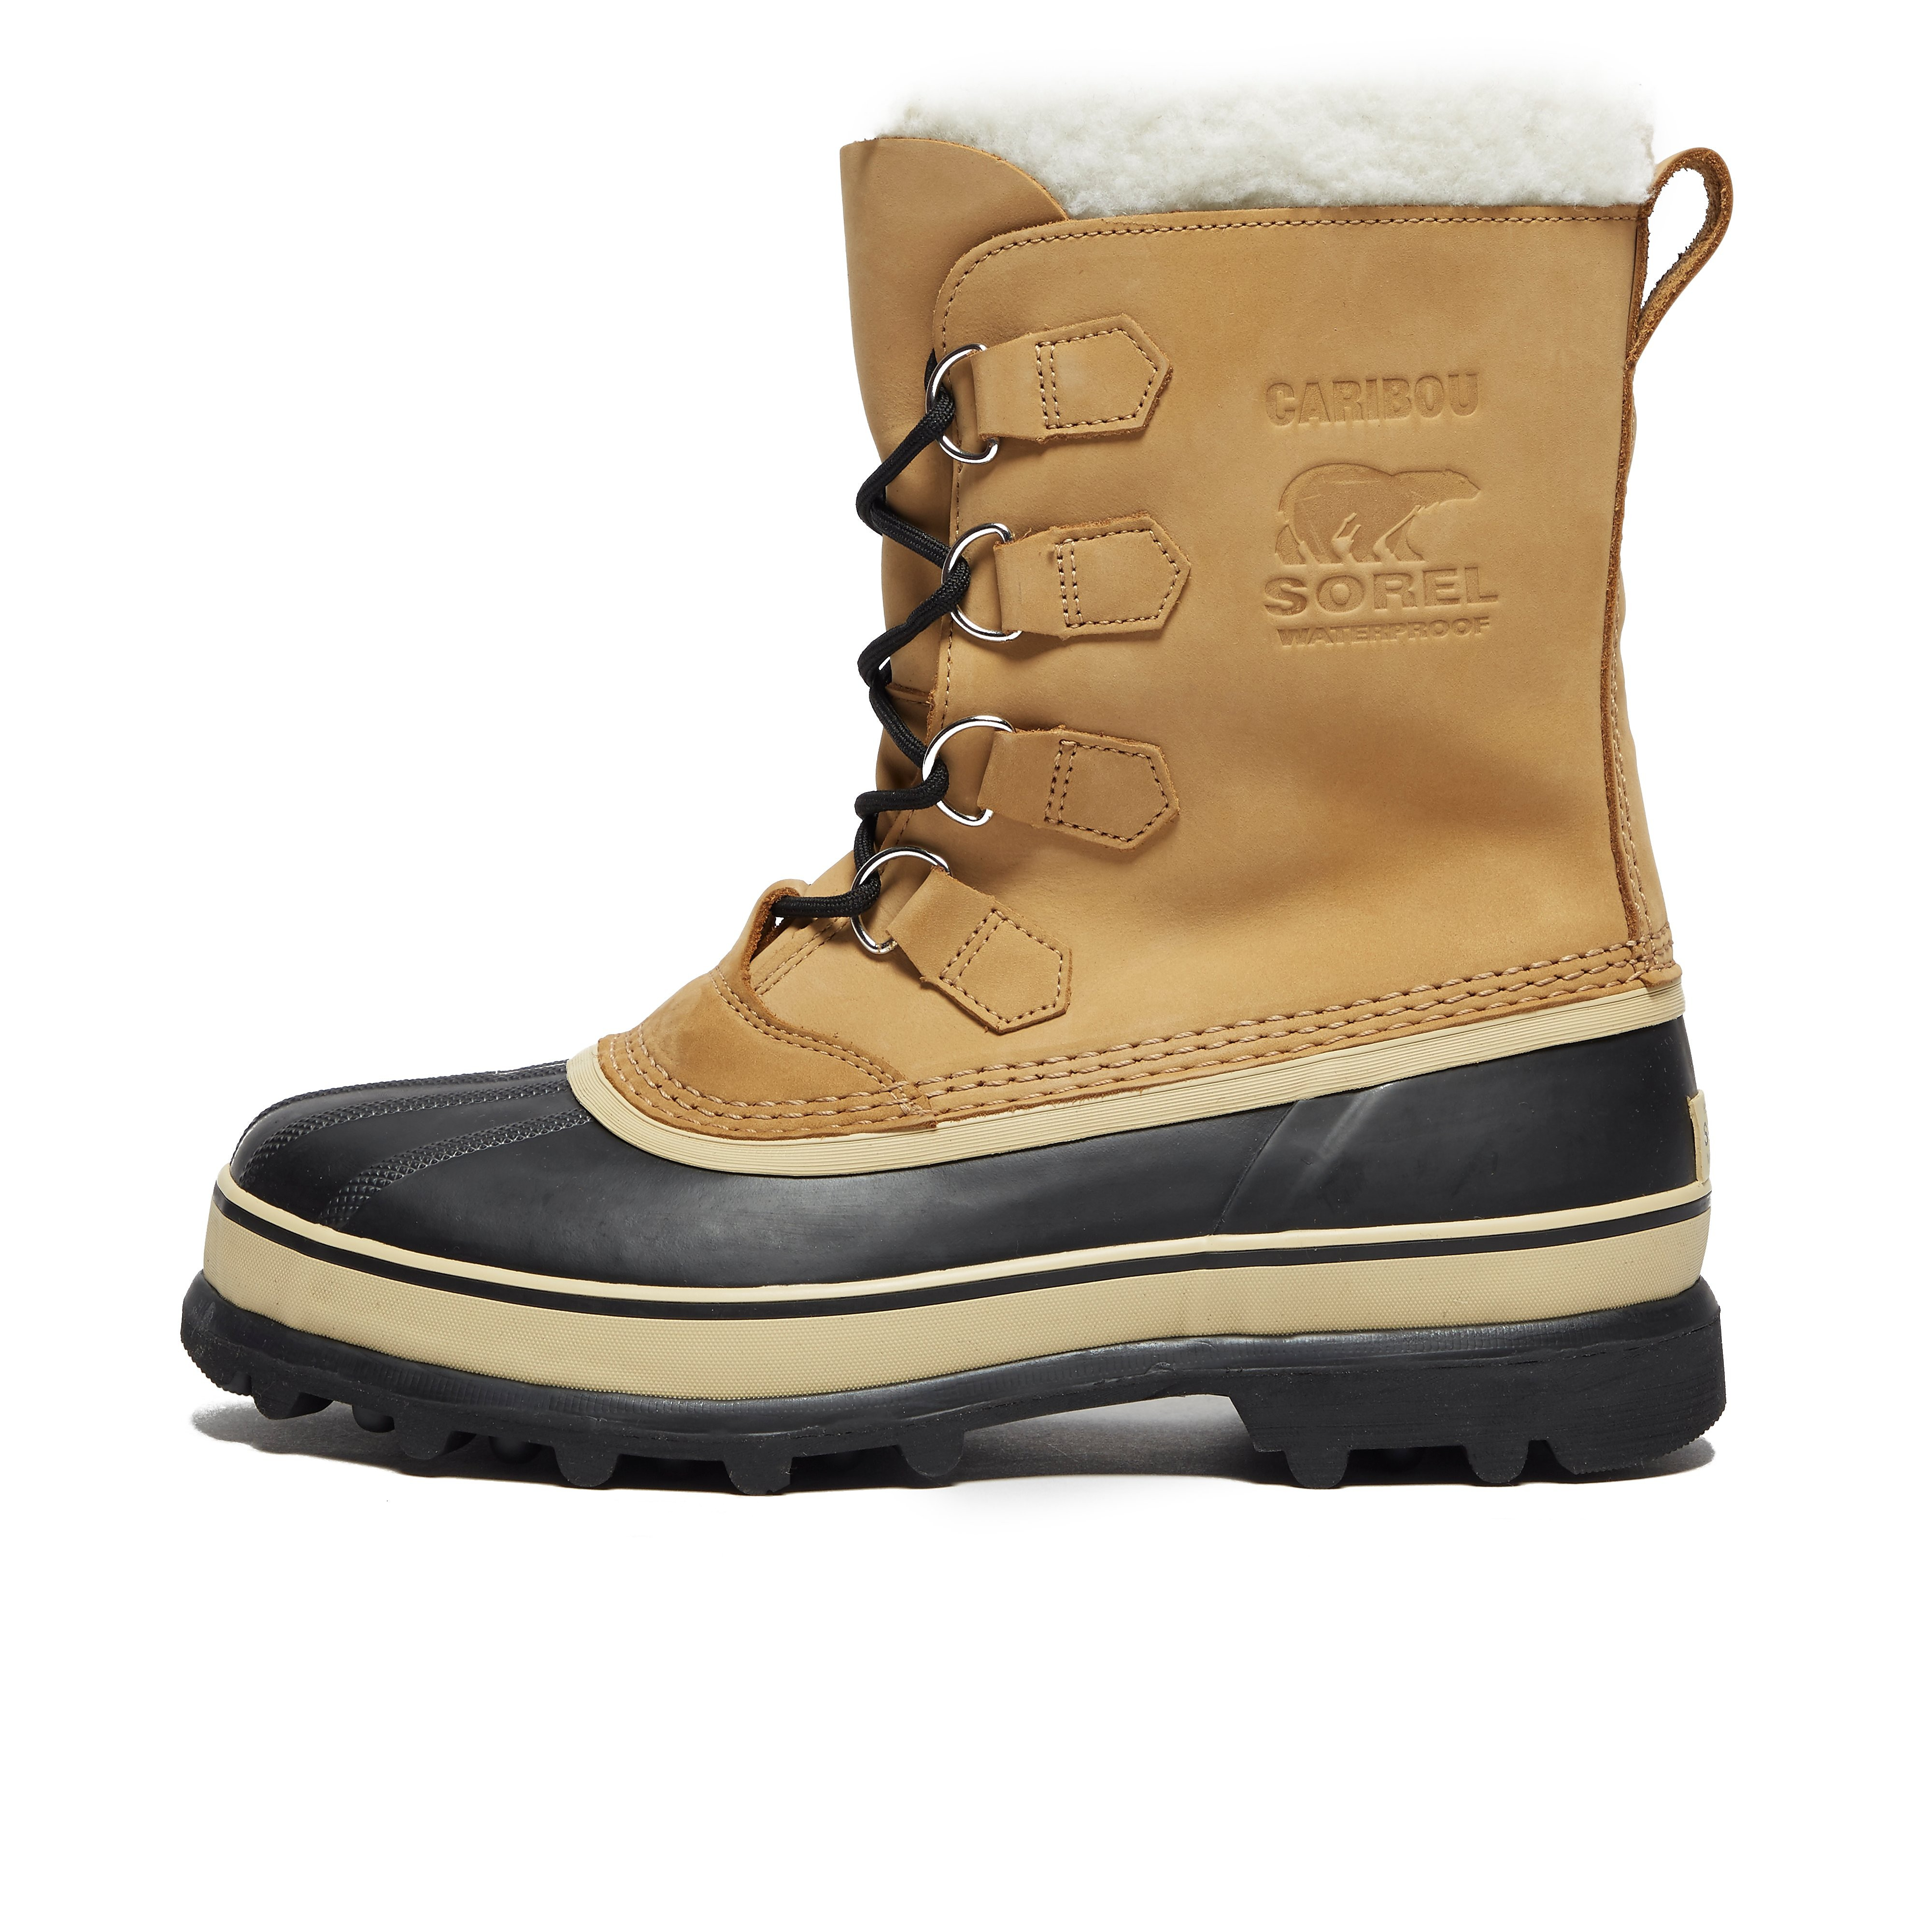 Sorel Caribou Men's Winter Boots